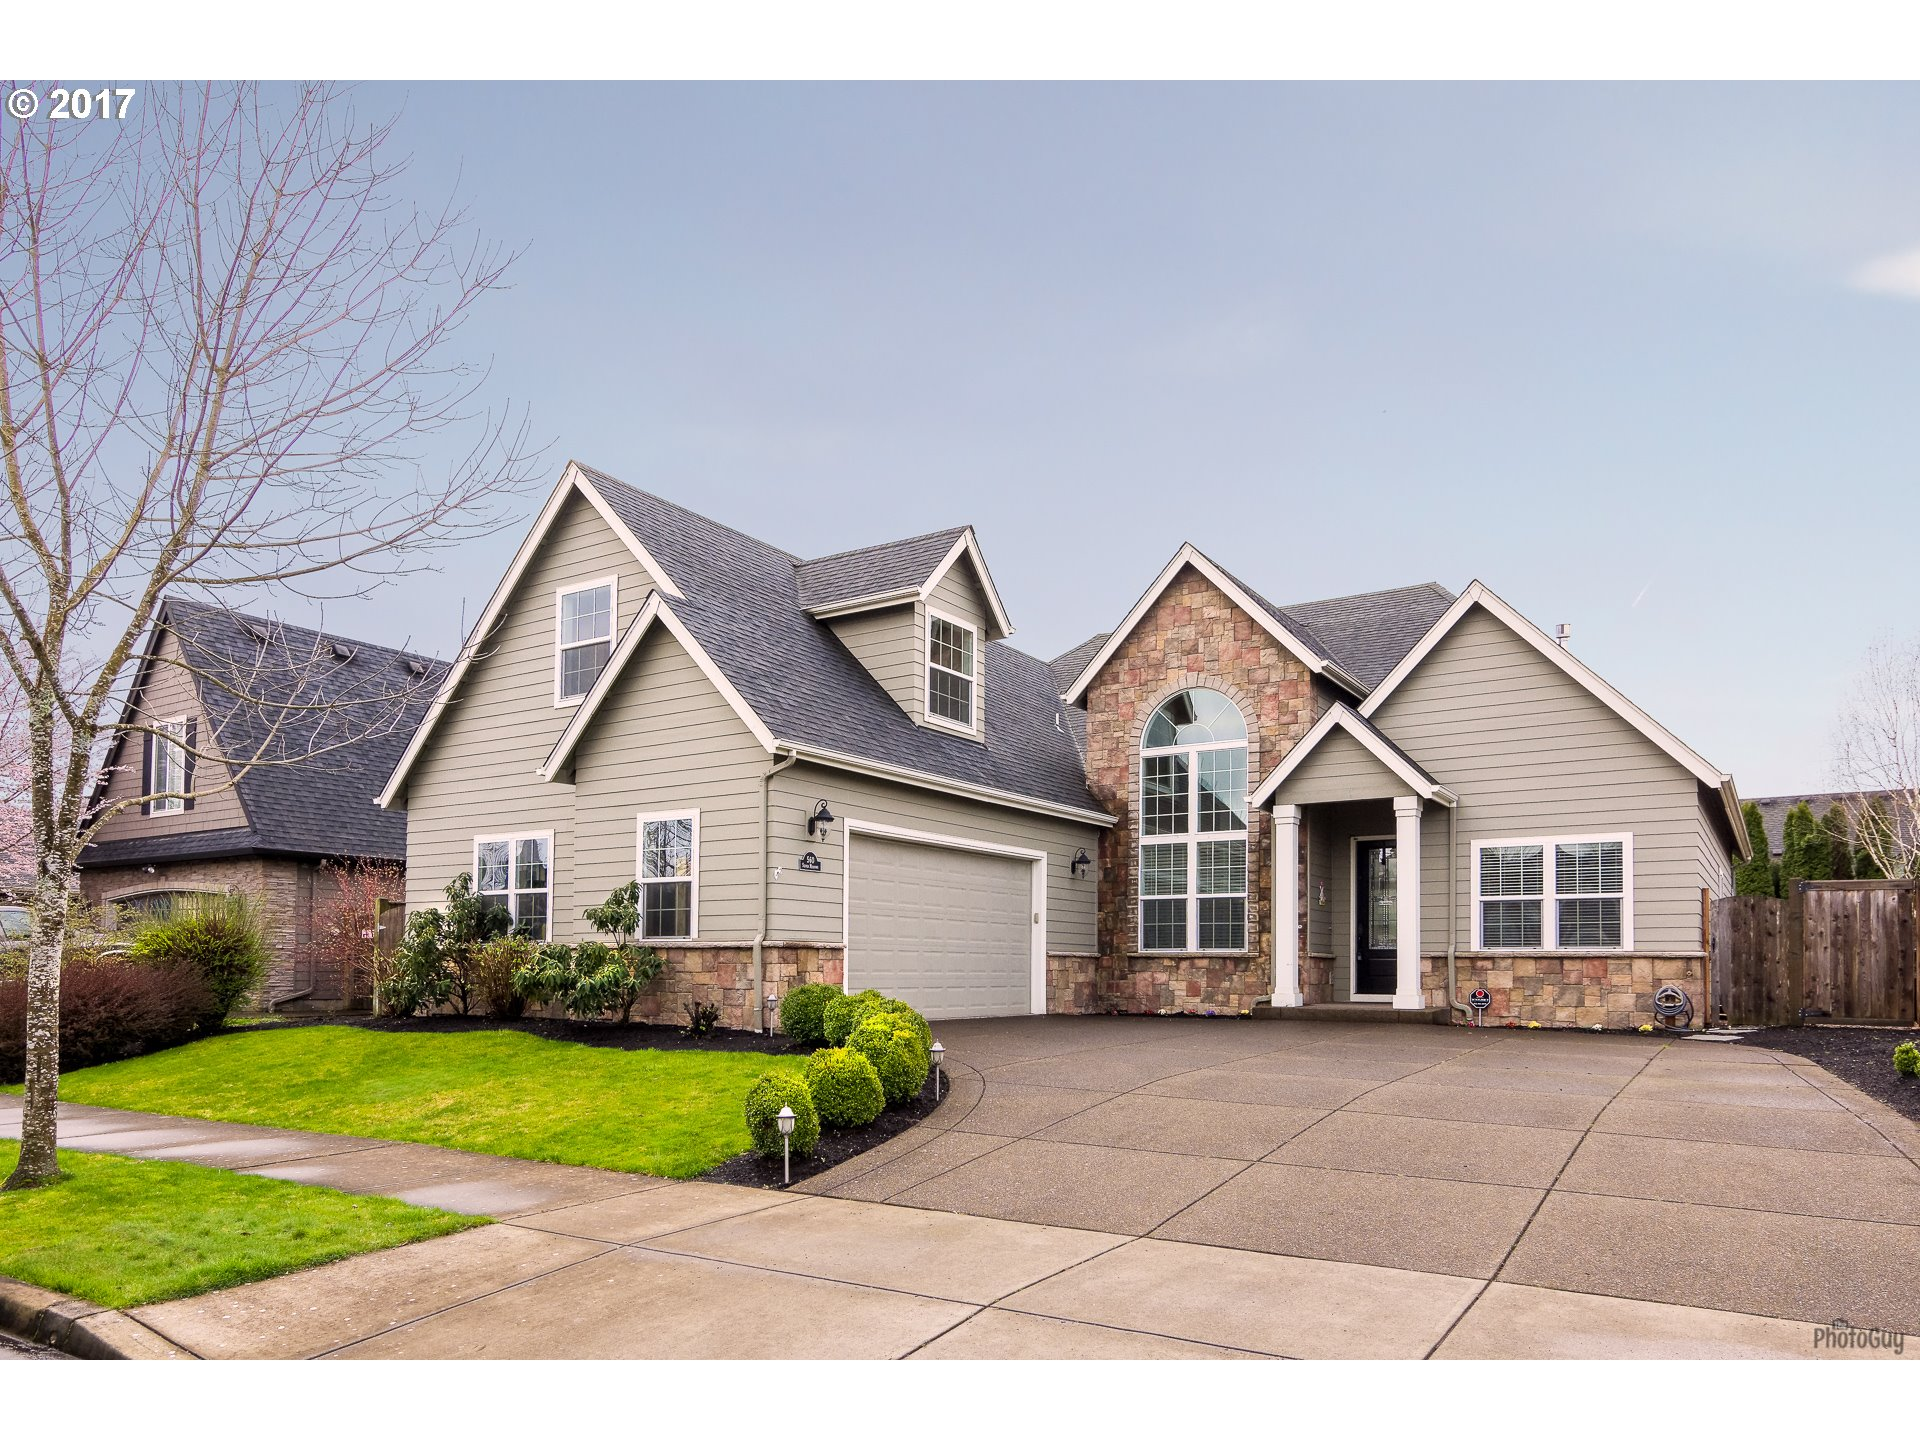 560 SILVER MEADOWS DR, Eugene, OR 97404